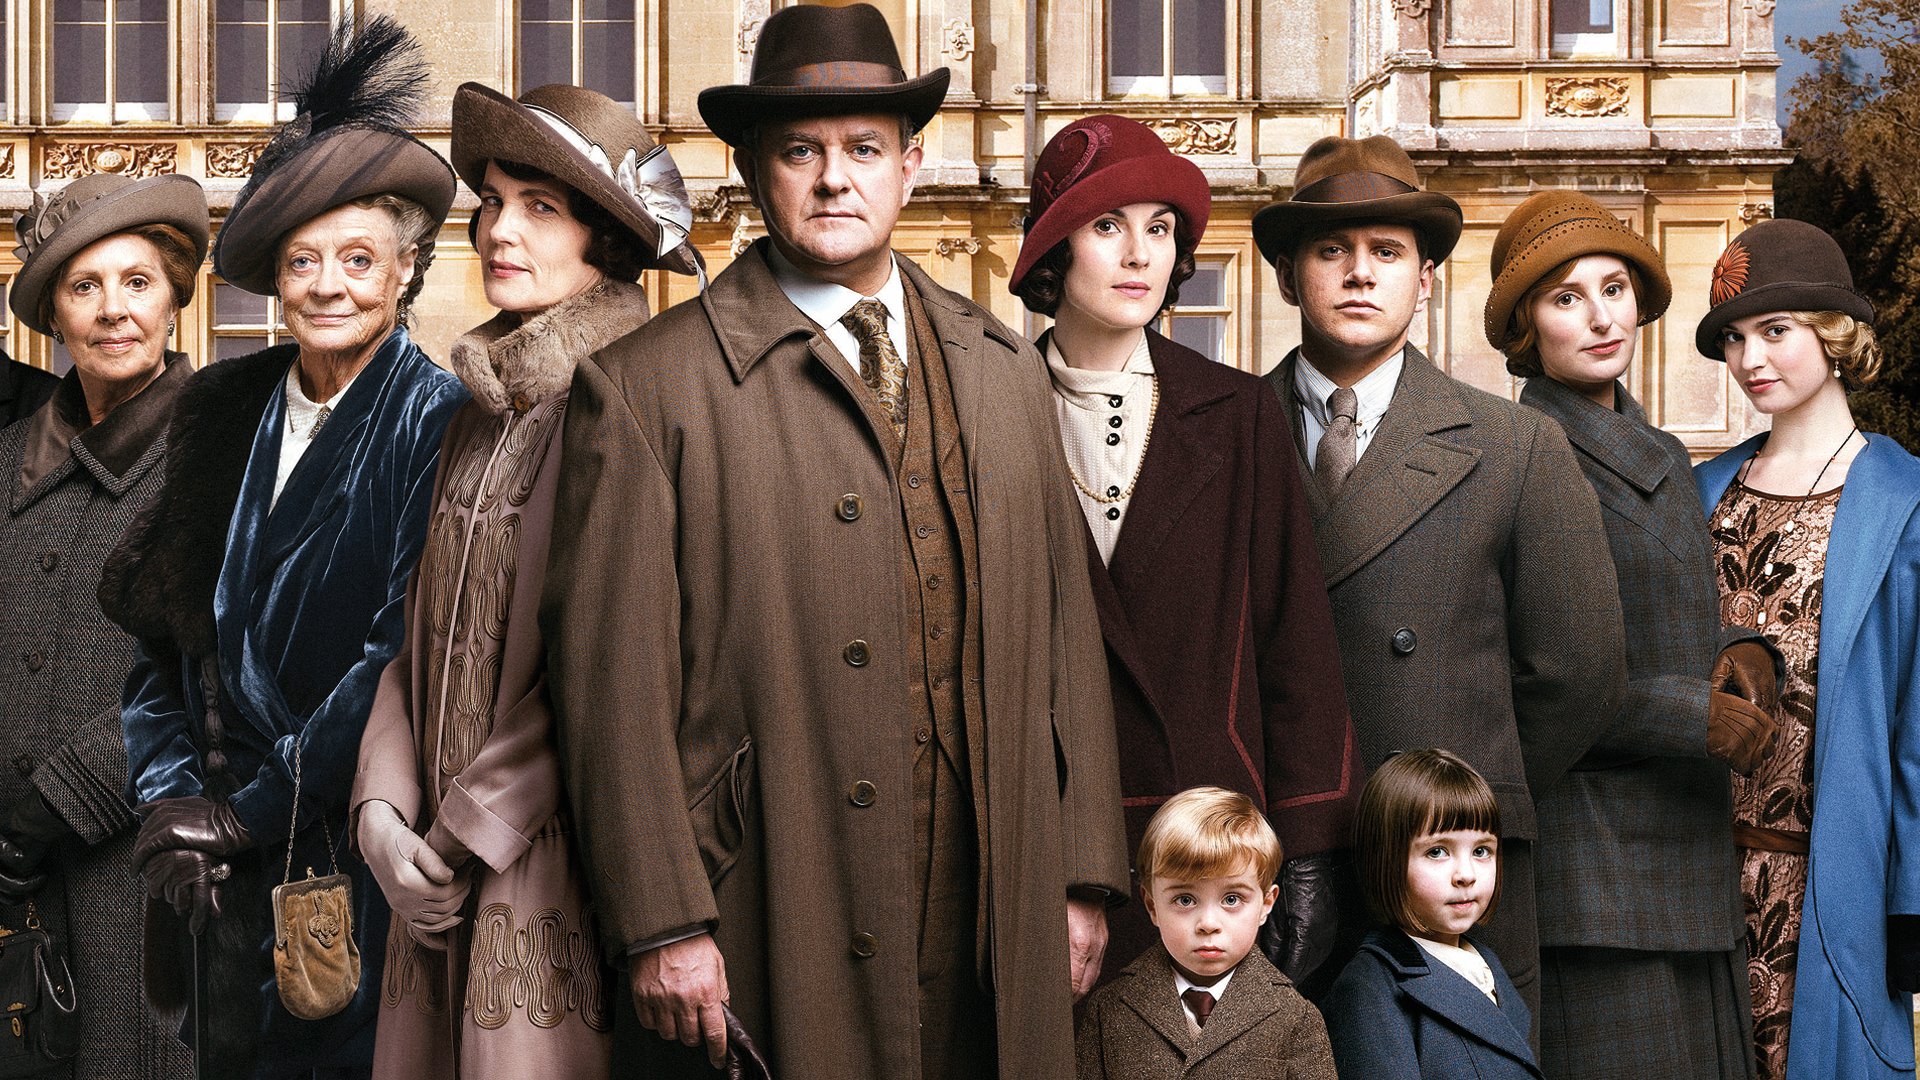 Downton Abbey: Final Season DVDs Coming in January - canceled TV ...